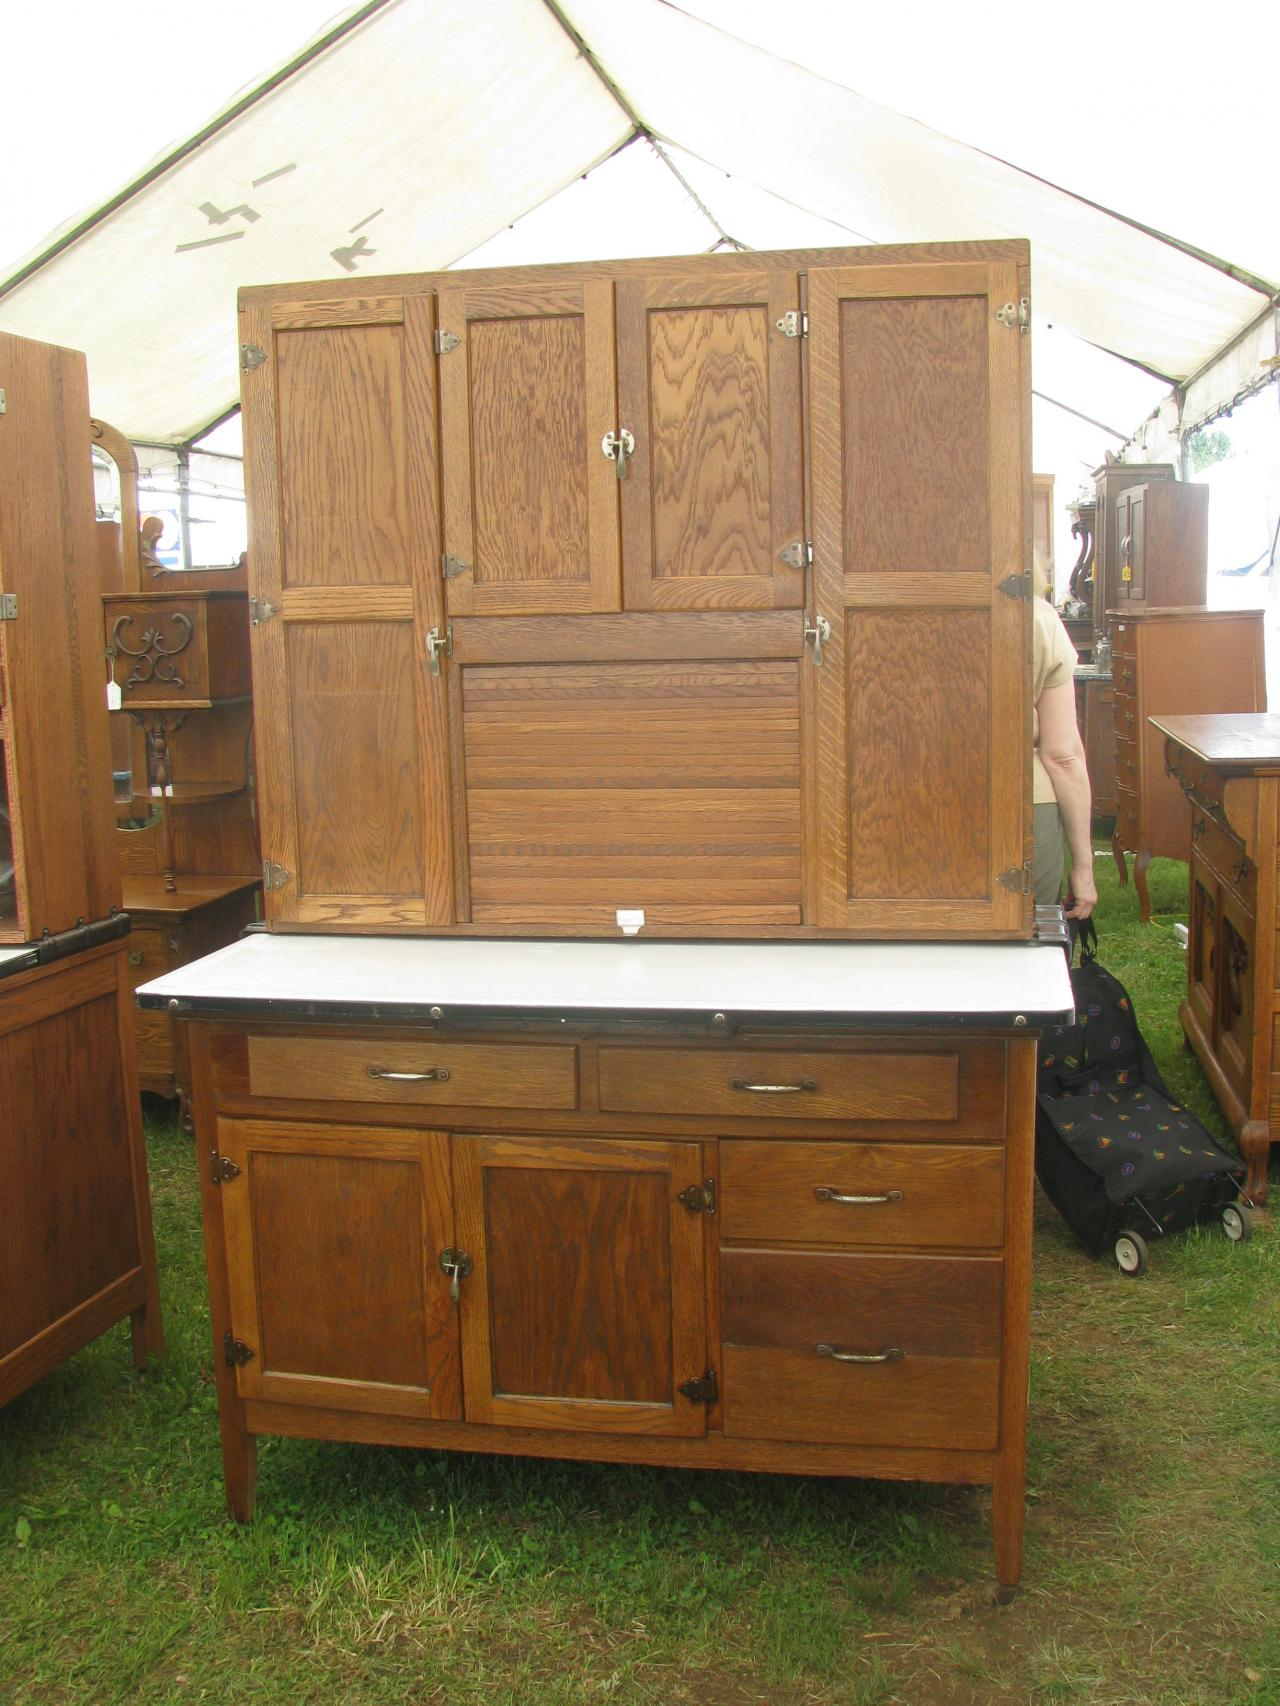 ... Sellers Hoosier Cabinet; Sellers Oak Bakers ... - Z's Antiques & Restorations - Hoosier/Baker's Cabinets Including Yet